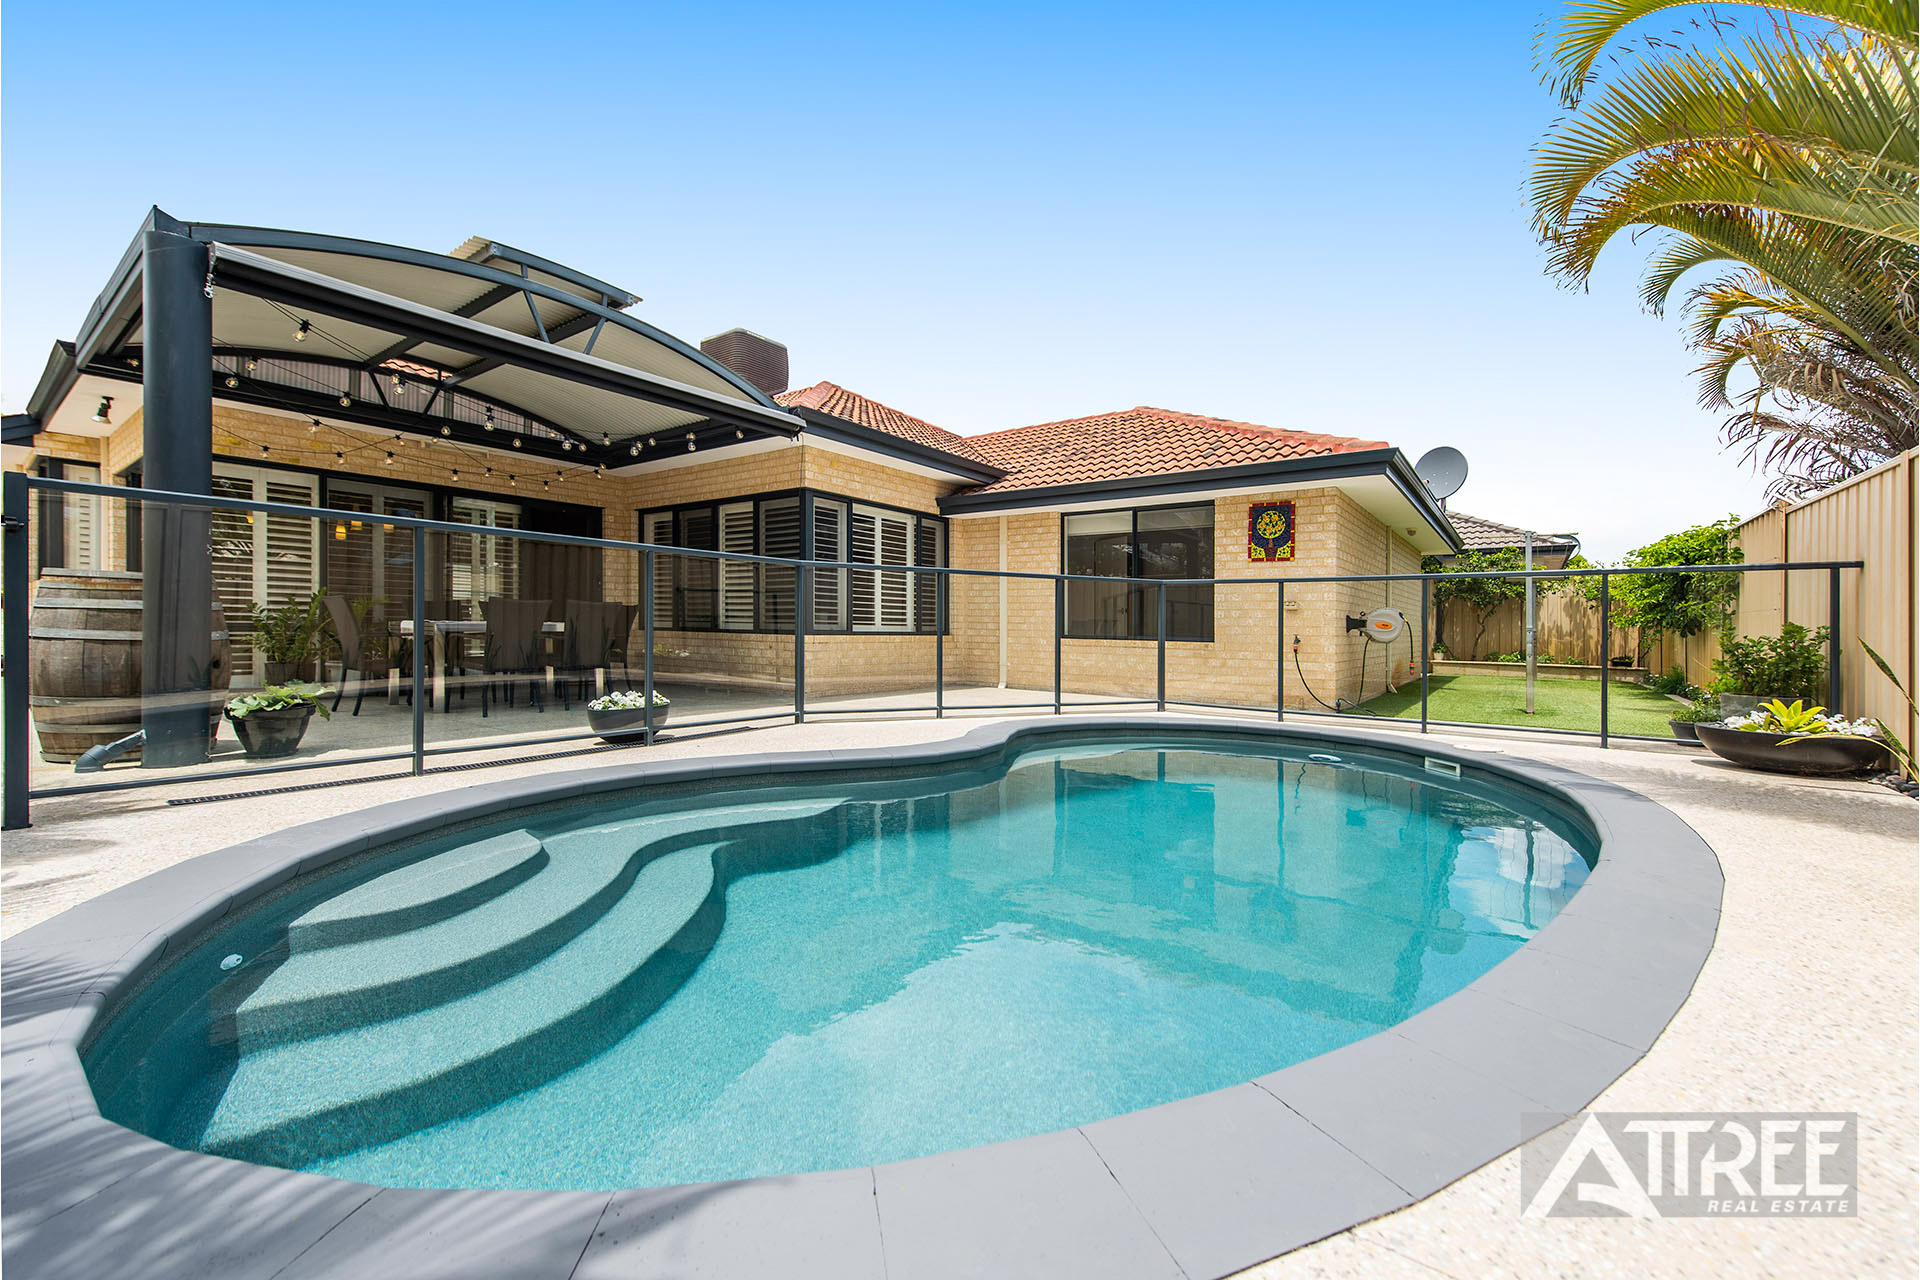 Property for sale in CANNING VALE, 9 Polaris Way : Attree Real Estate